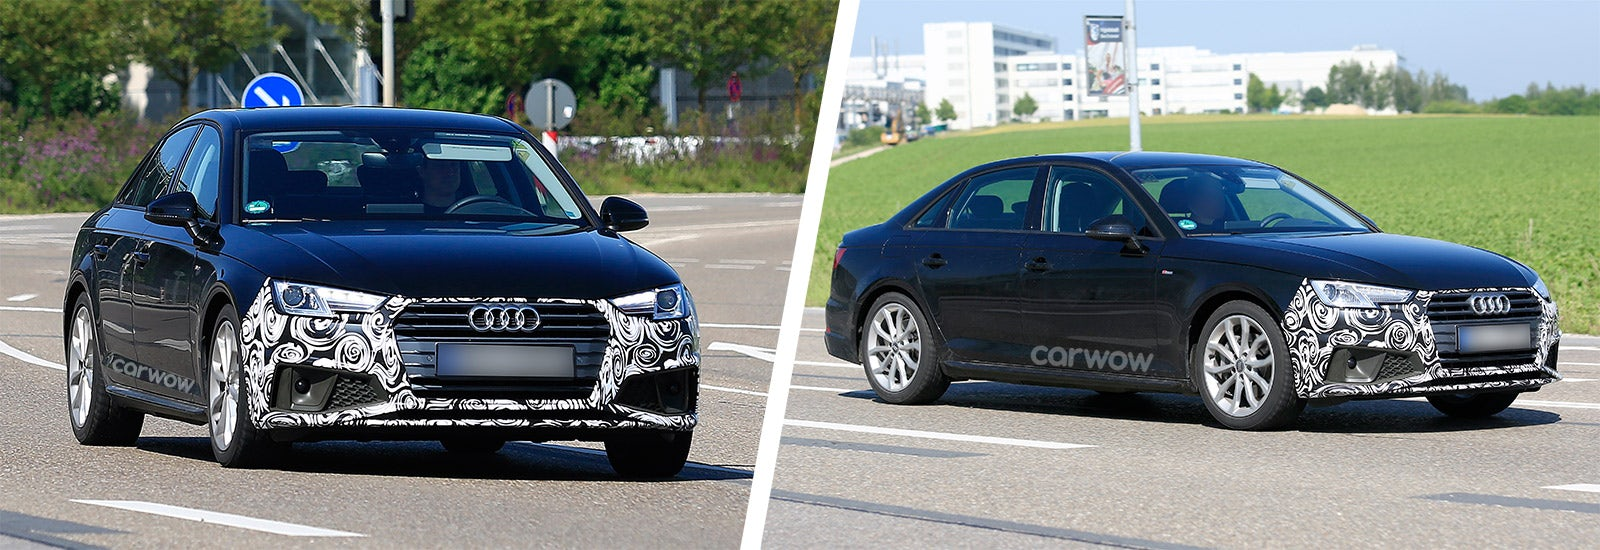 Audi A Facelift Price Specs Release Date Carwow - Audi a4 comparable cars